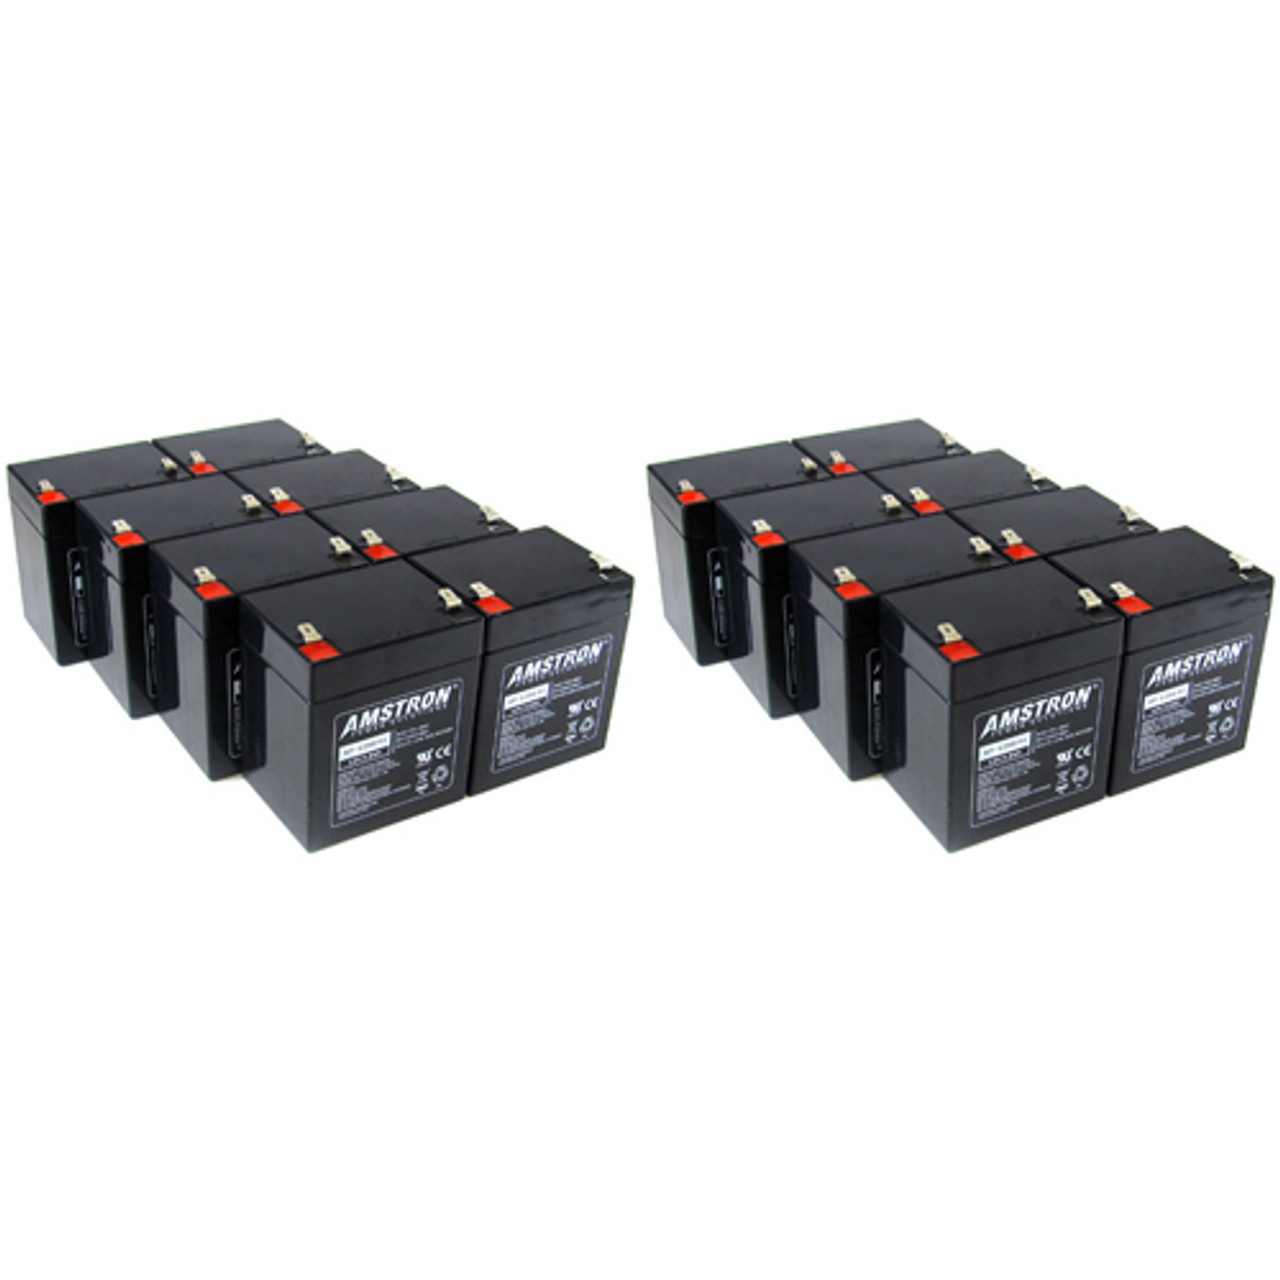 Amstron Replacement UPS Battery for APC RBC140